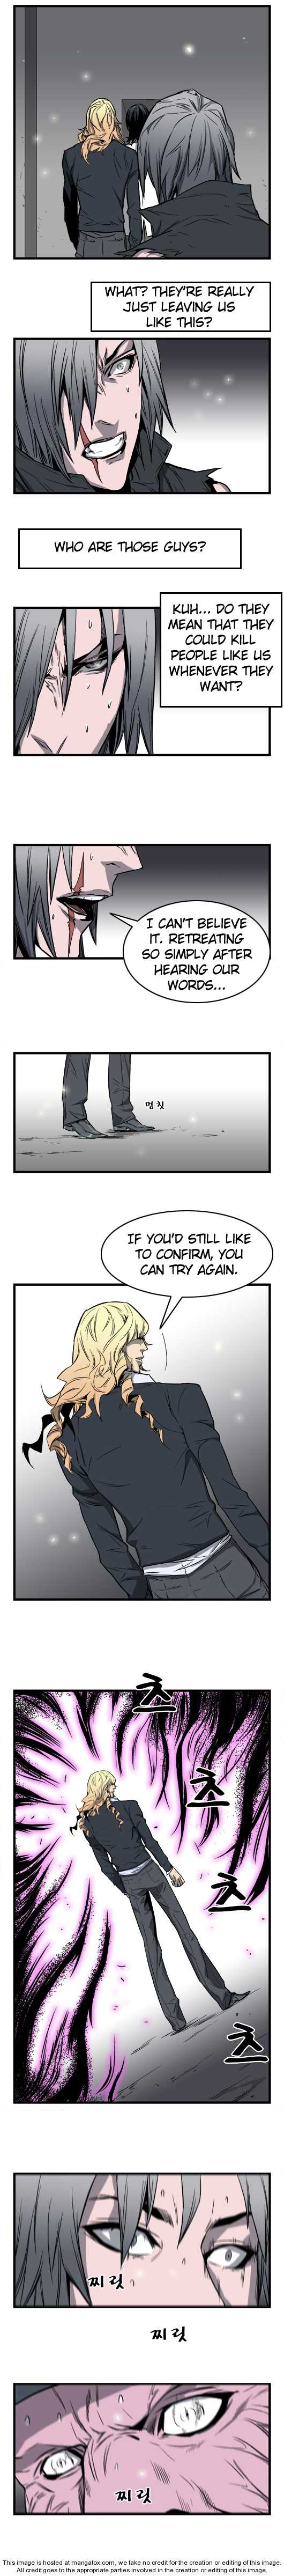 Noblesse 33 Page 3